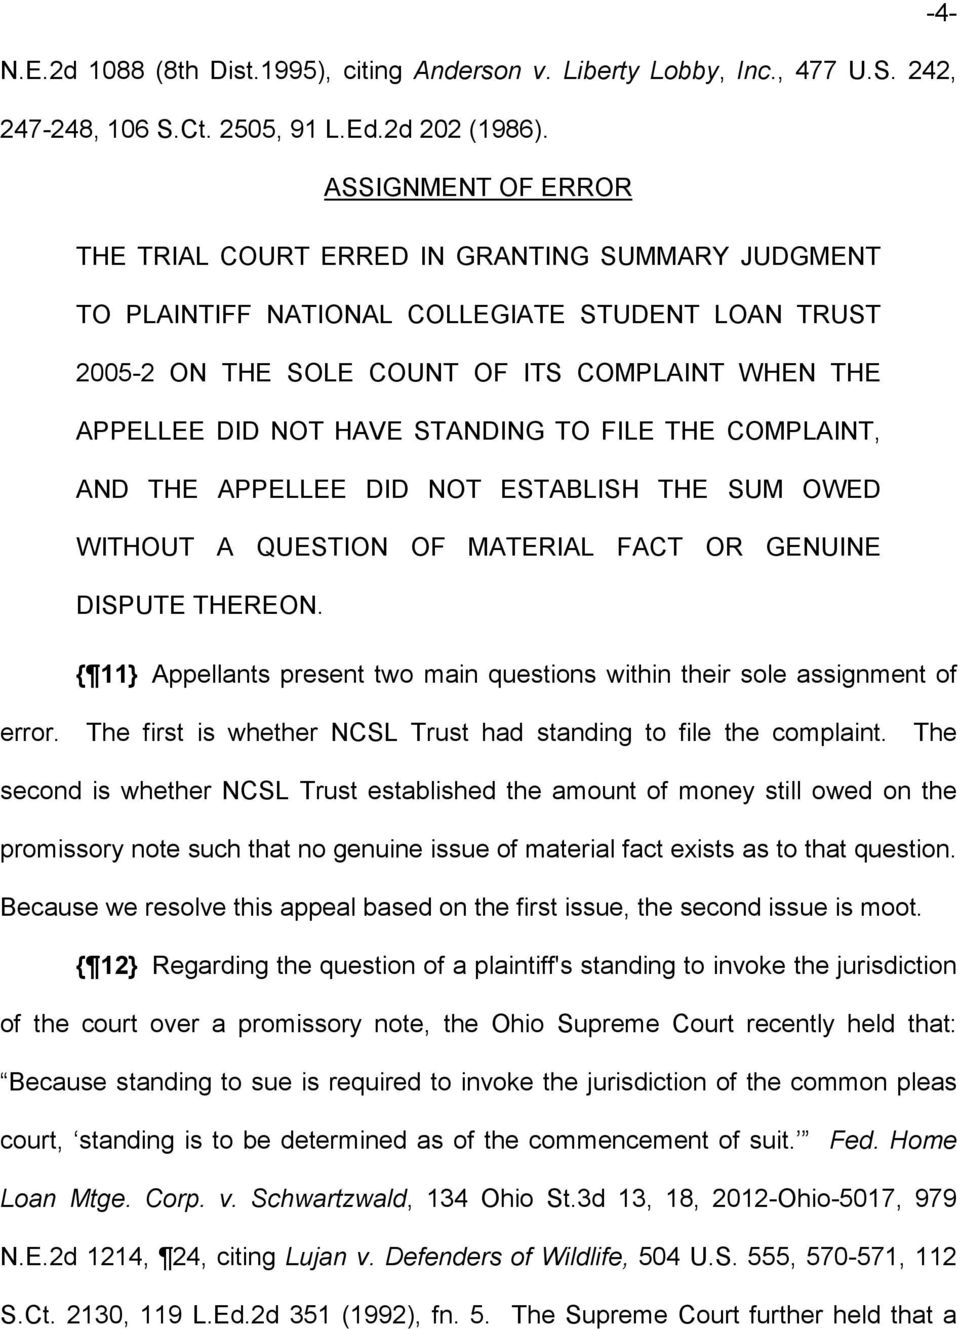 STANDING TO FILE THE COMPLAINT, AND THE APPELLEE DID NOT ESTABLISH THE SUM OWED WITHOUT A QUESTION OF MATERIAL FACT OR GENUINE DISPUTE THEREON.